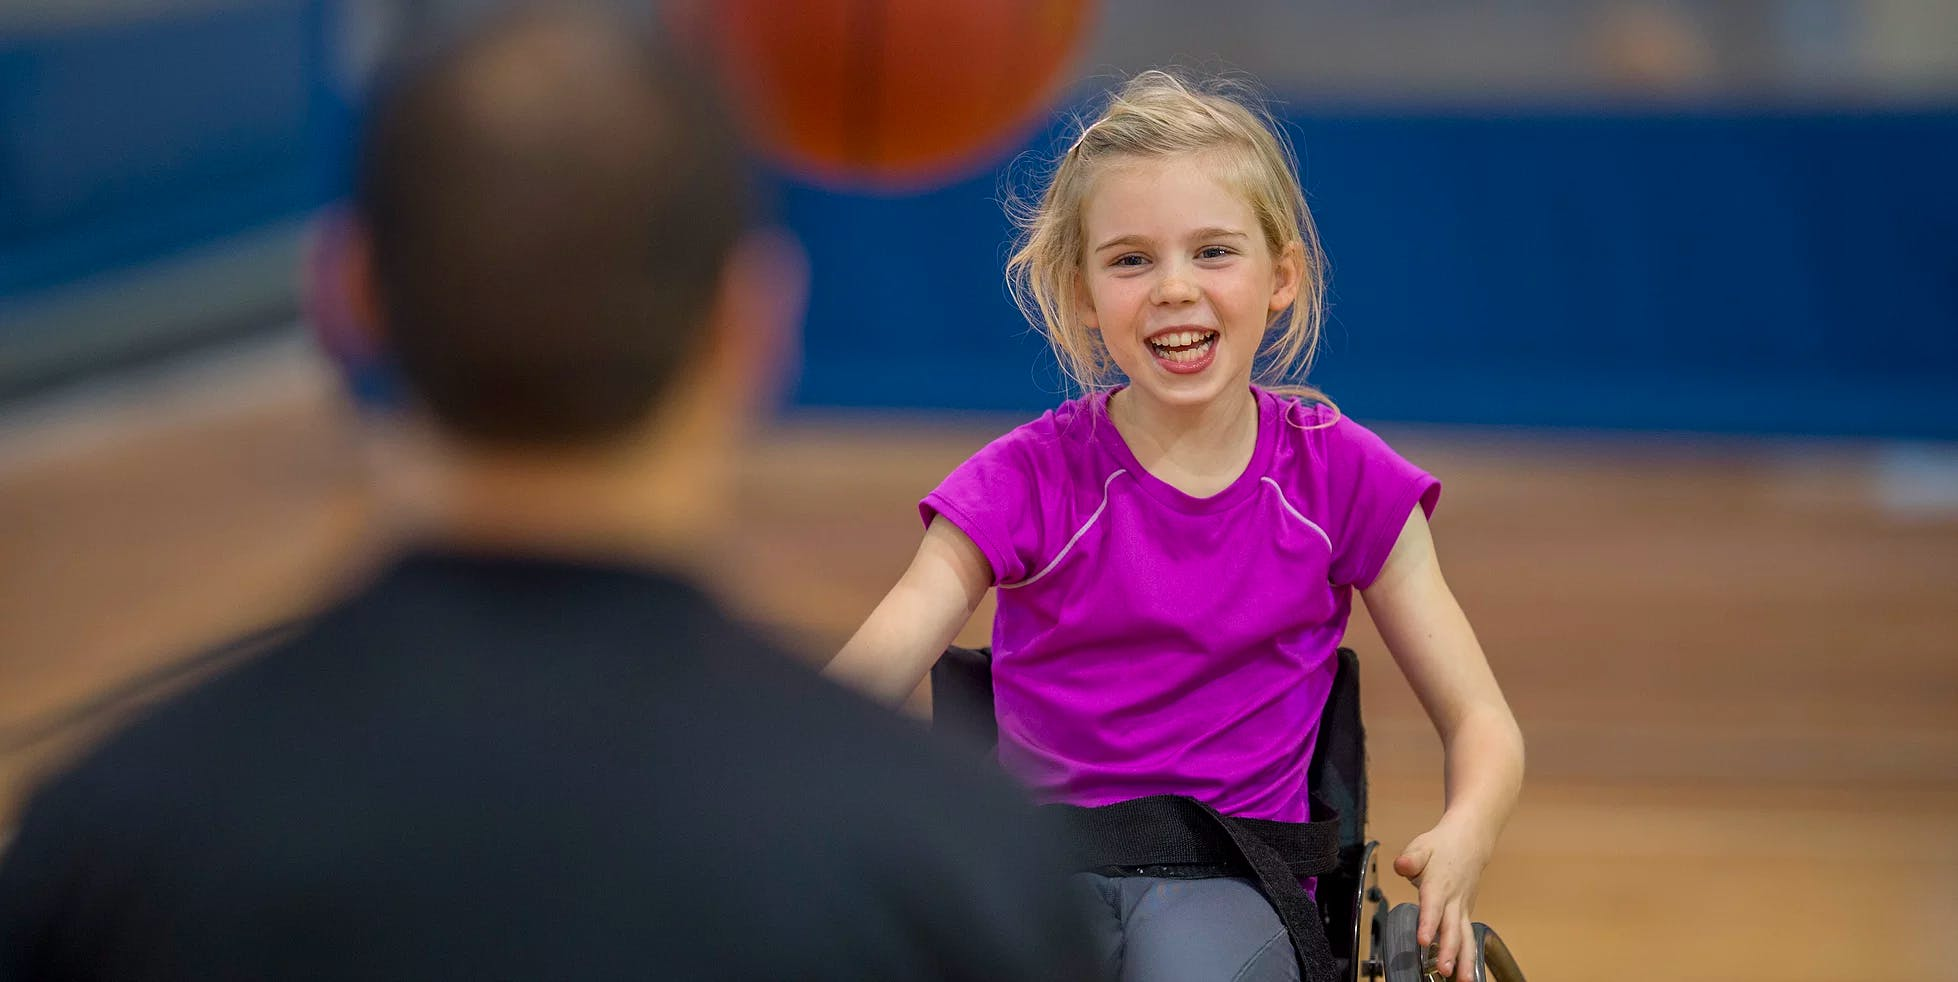 Girl with paraplegia in a wheelchair playing basketball